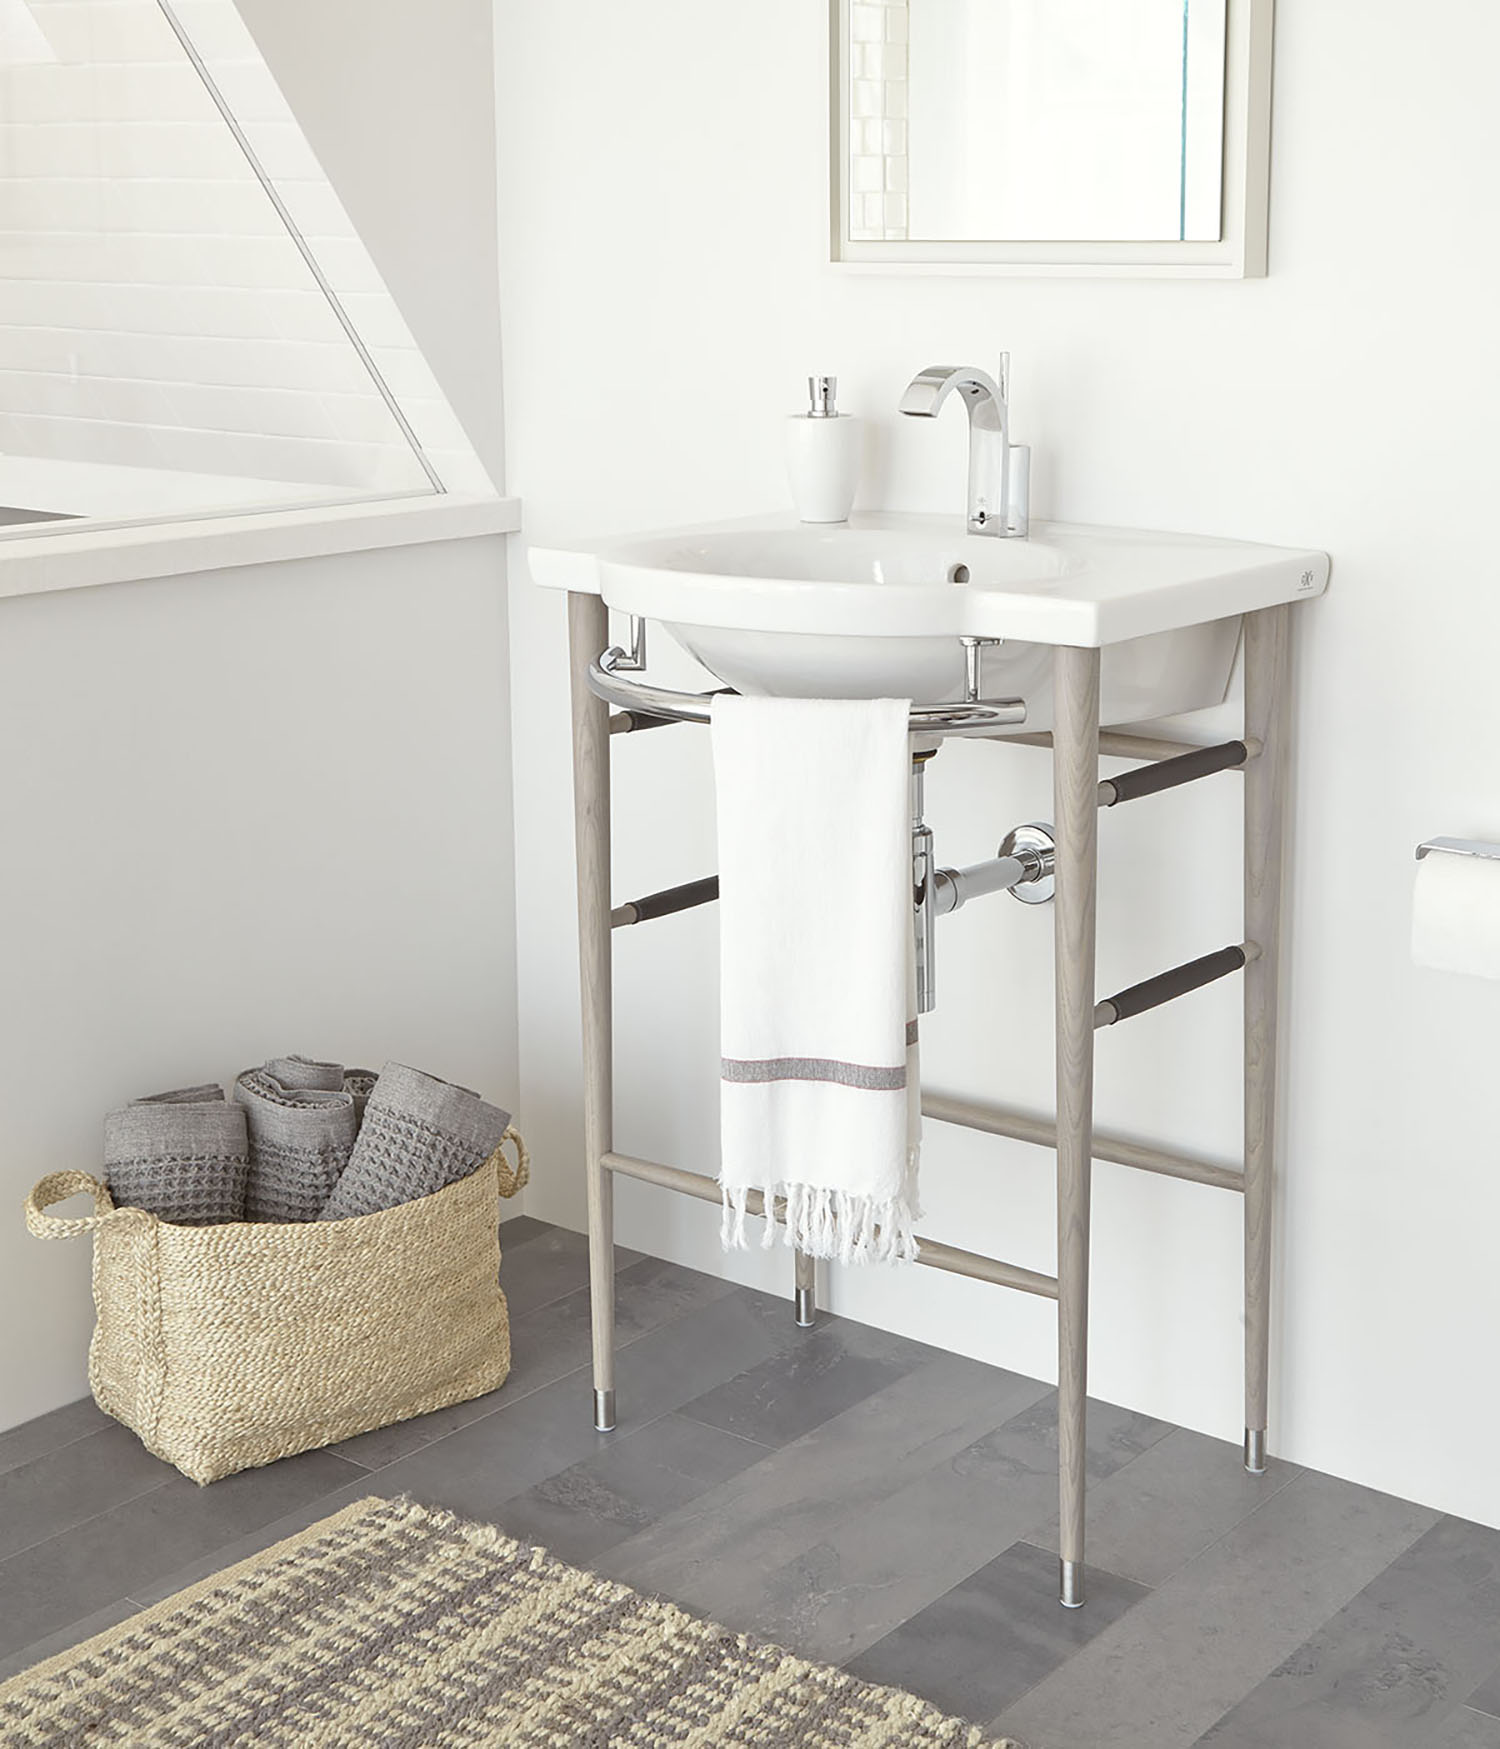 Lowell console sink,  DXV .